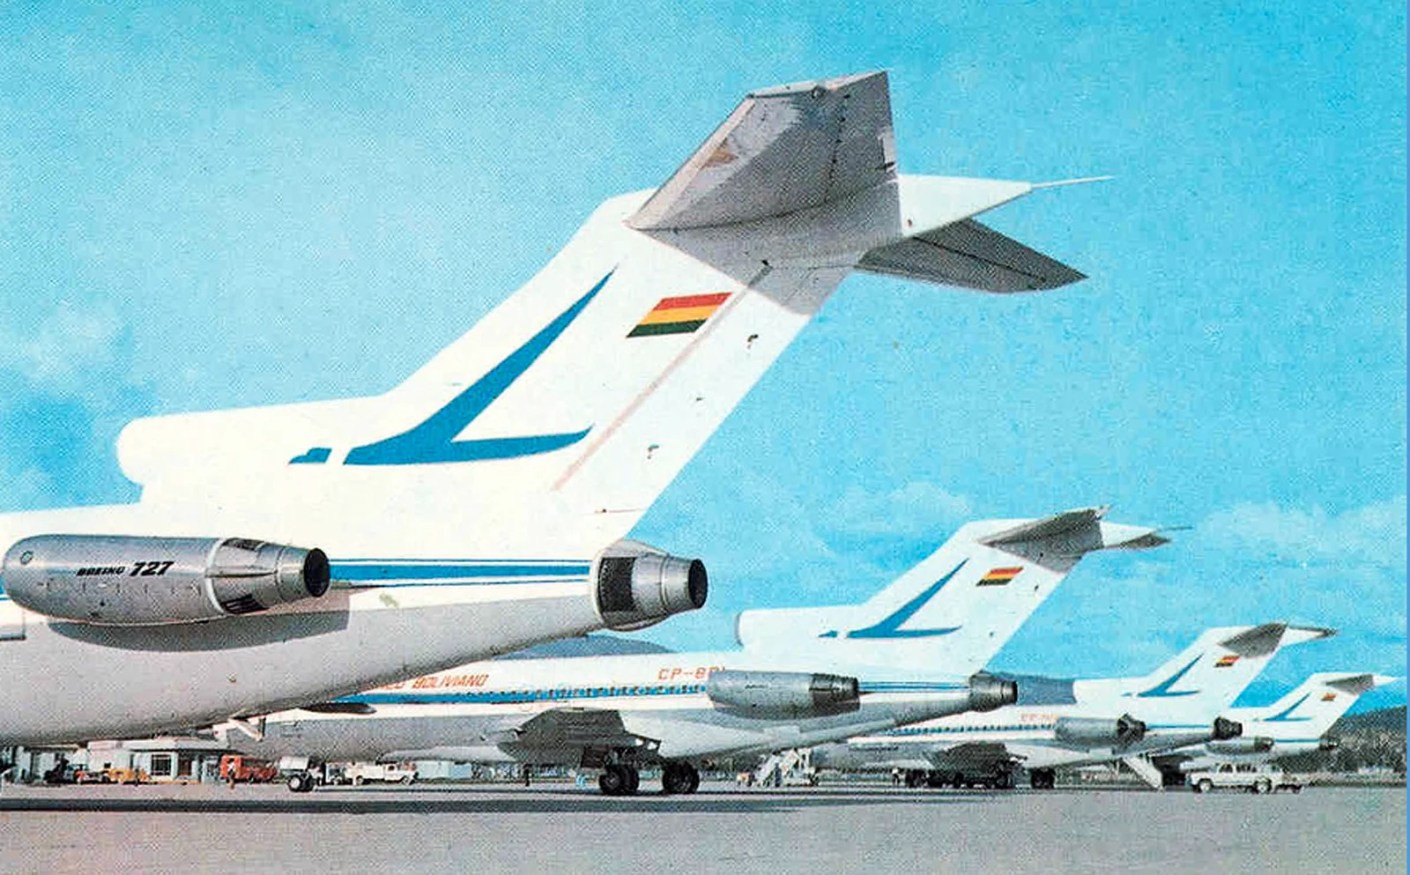 727s of Lloyd Aereo Boliviano (LAB), one of South America's earliest airlines.